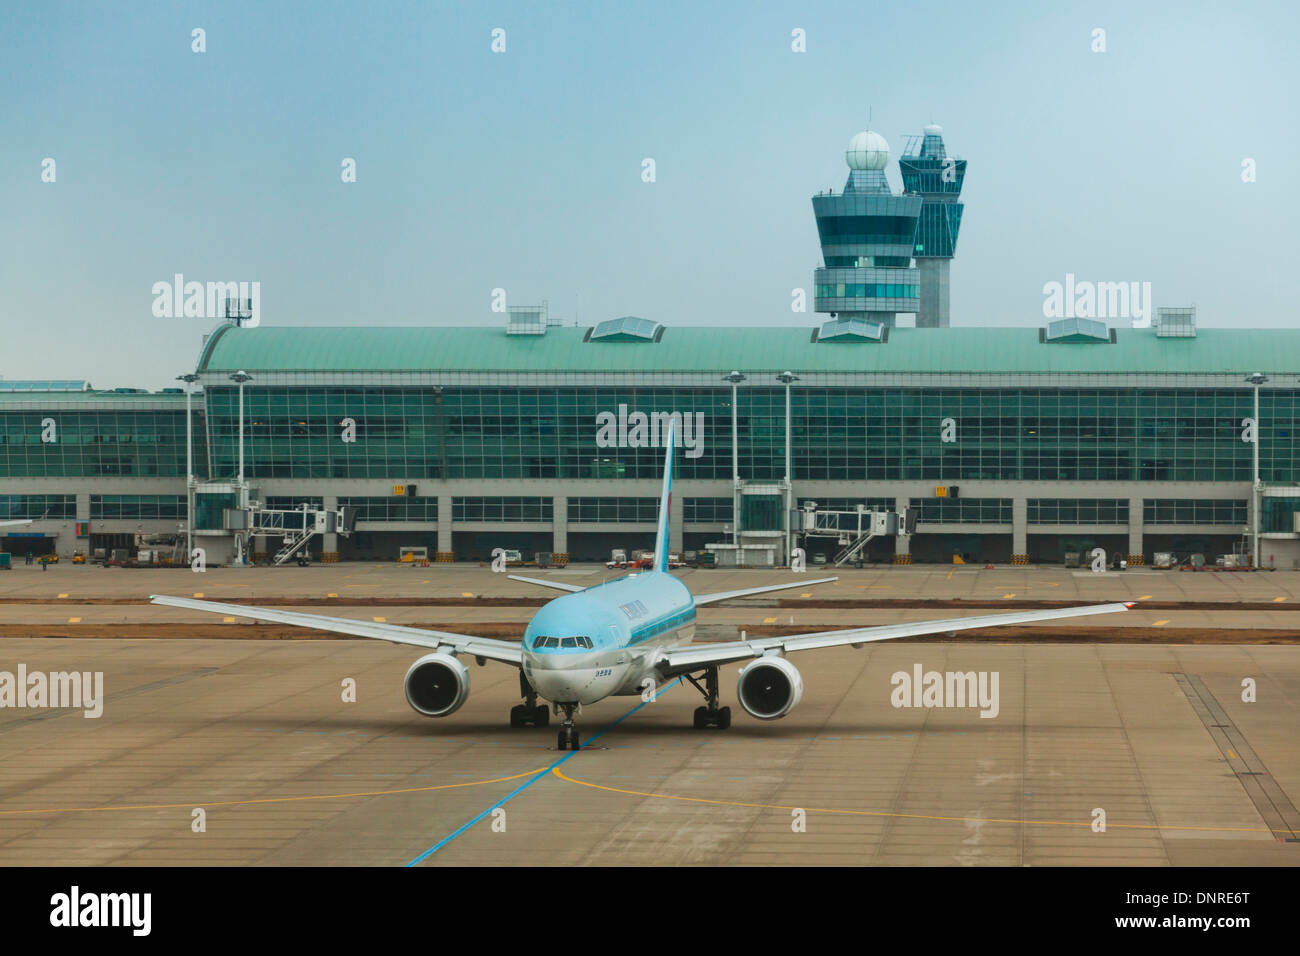 Korean Air Boeing 777-200 plane taxiing to runway - Incheon International Airport, South Korea - Stock Image